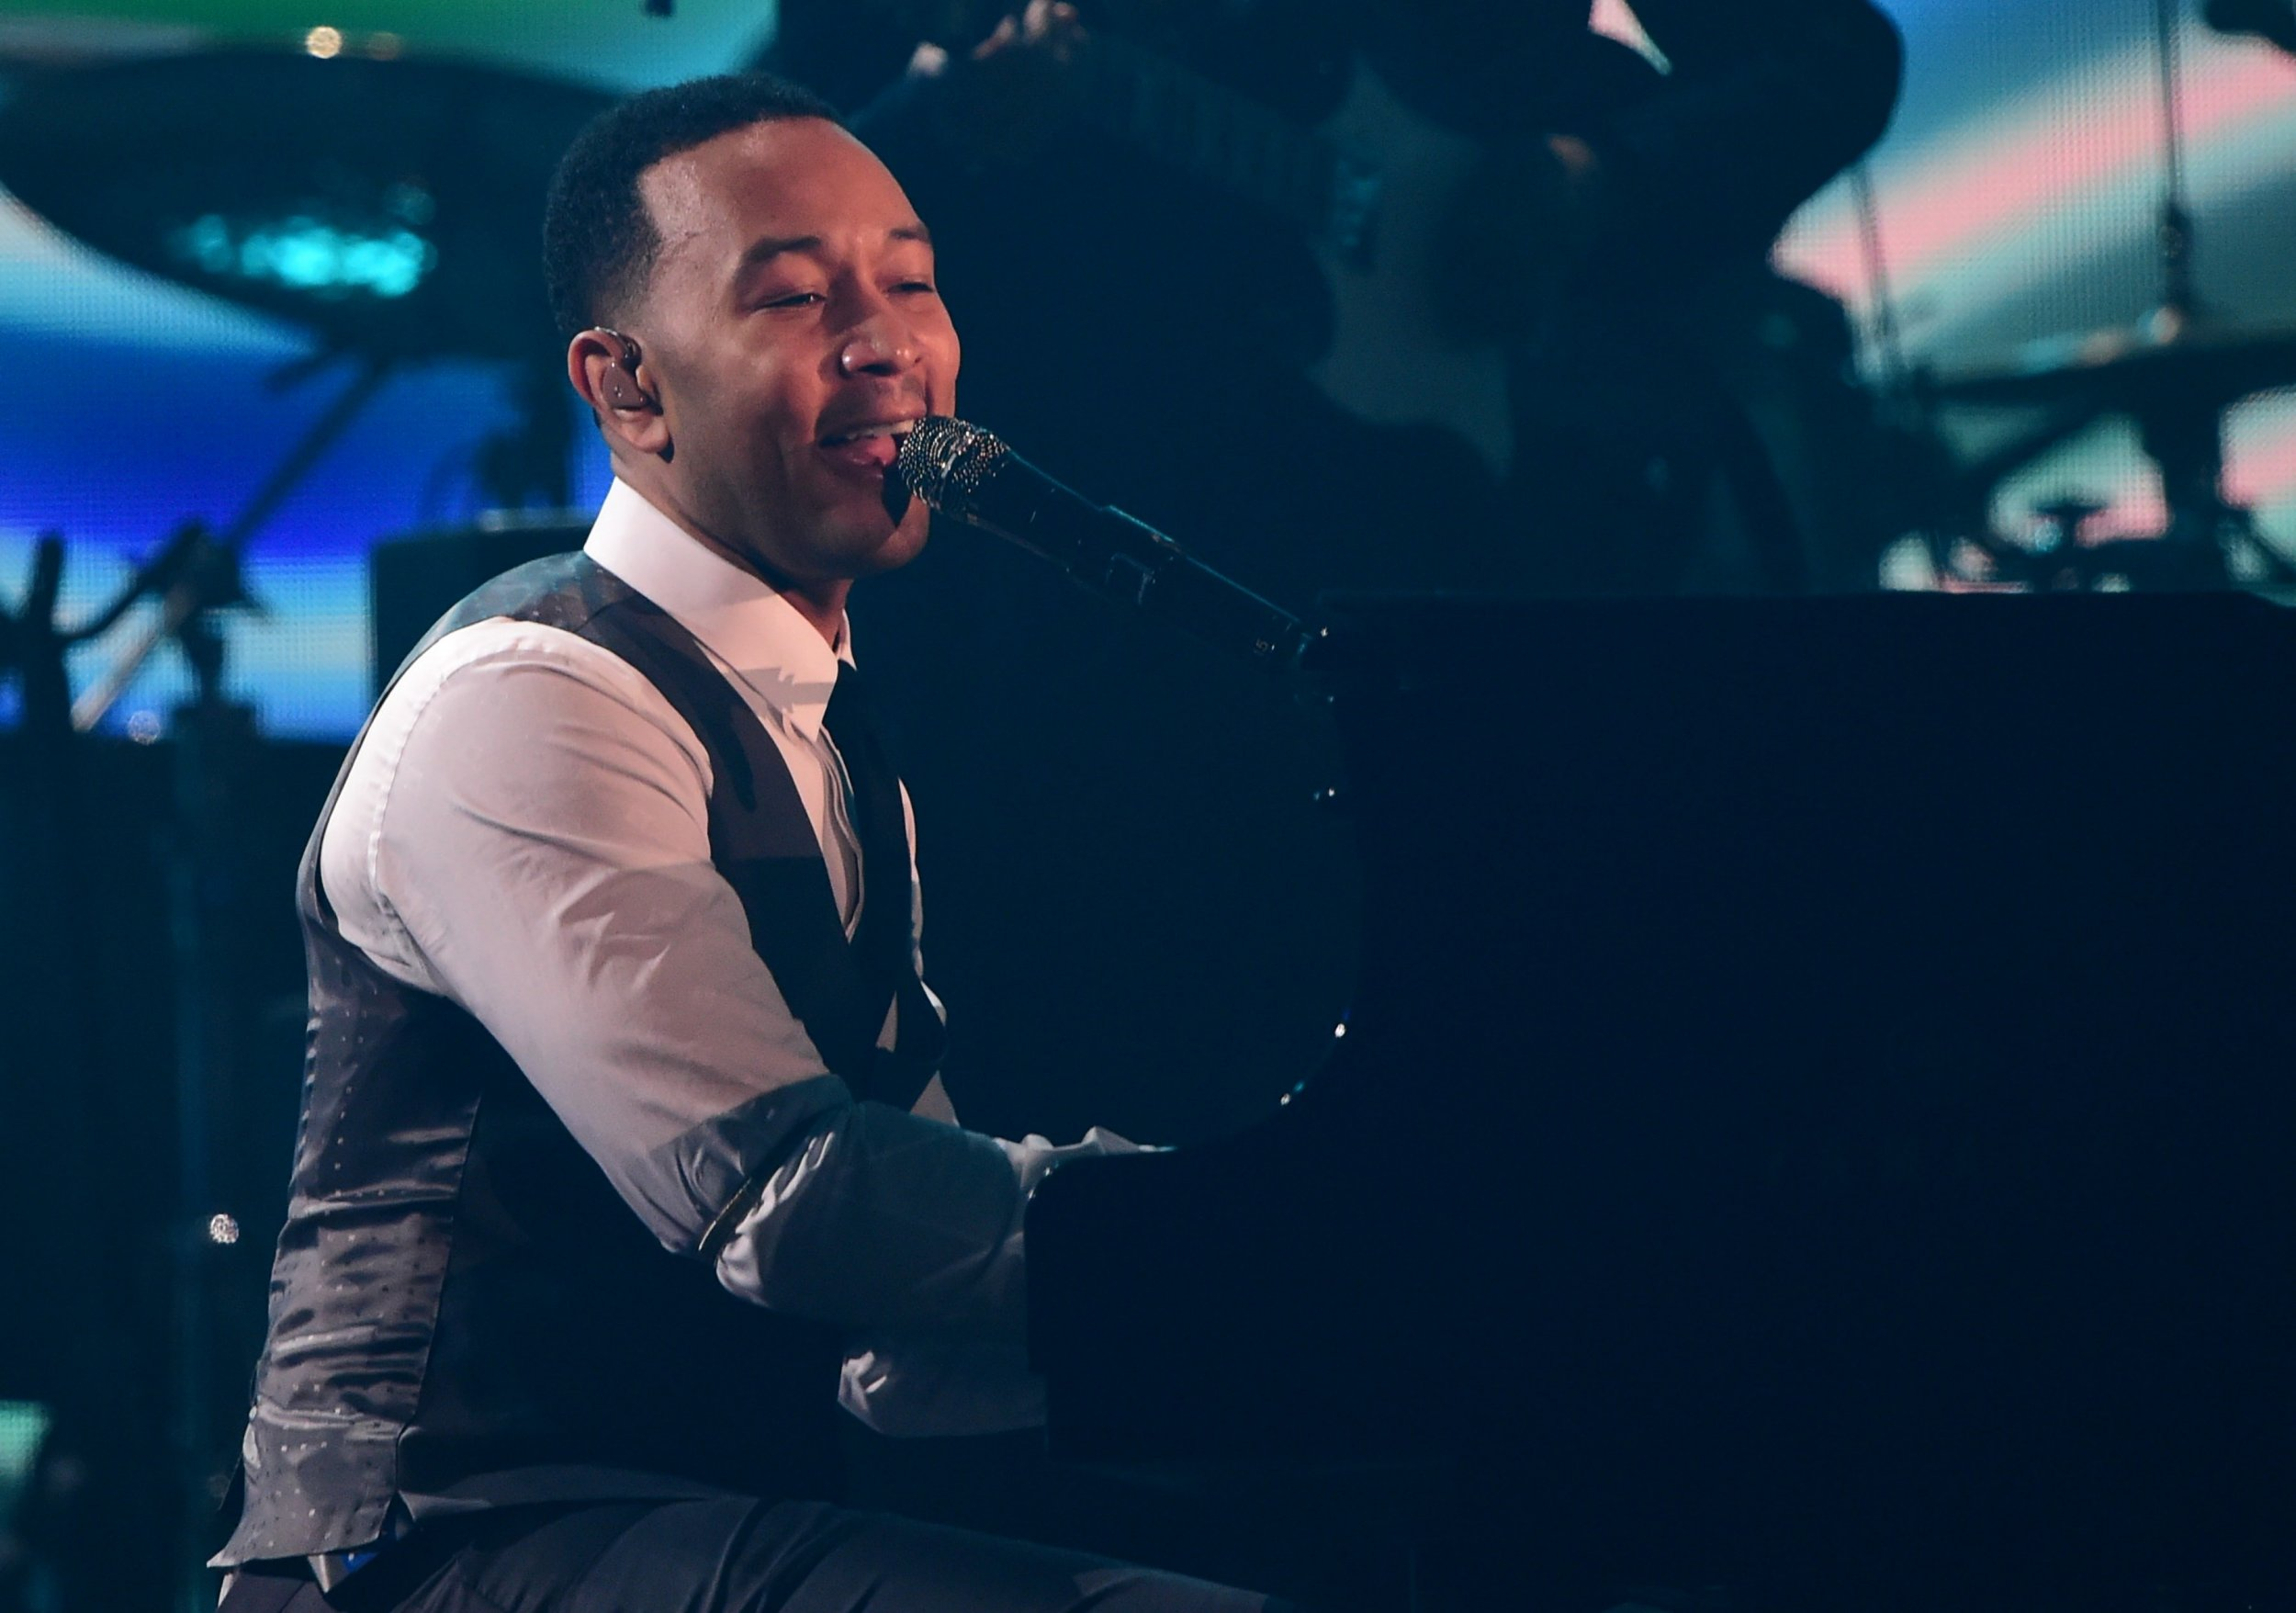 Singer-songwriter John Legend perfroms onstage during the 58th Annual Grammy music Awards in Los Angeles February 15, 2016. AFP PHOTO/ ROBYN BECKROBYN BECK/AFP/Getty Images